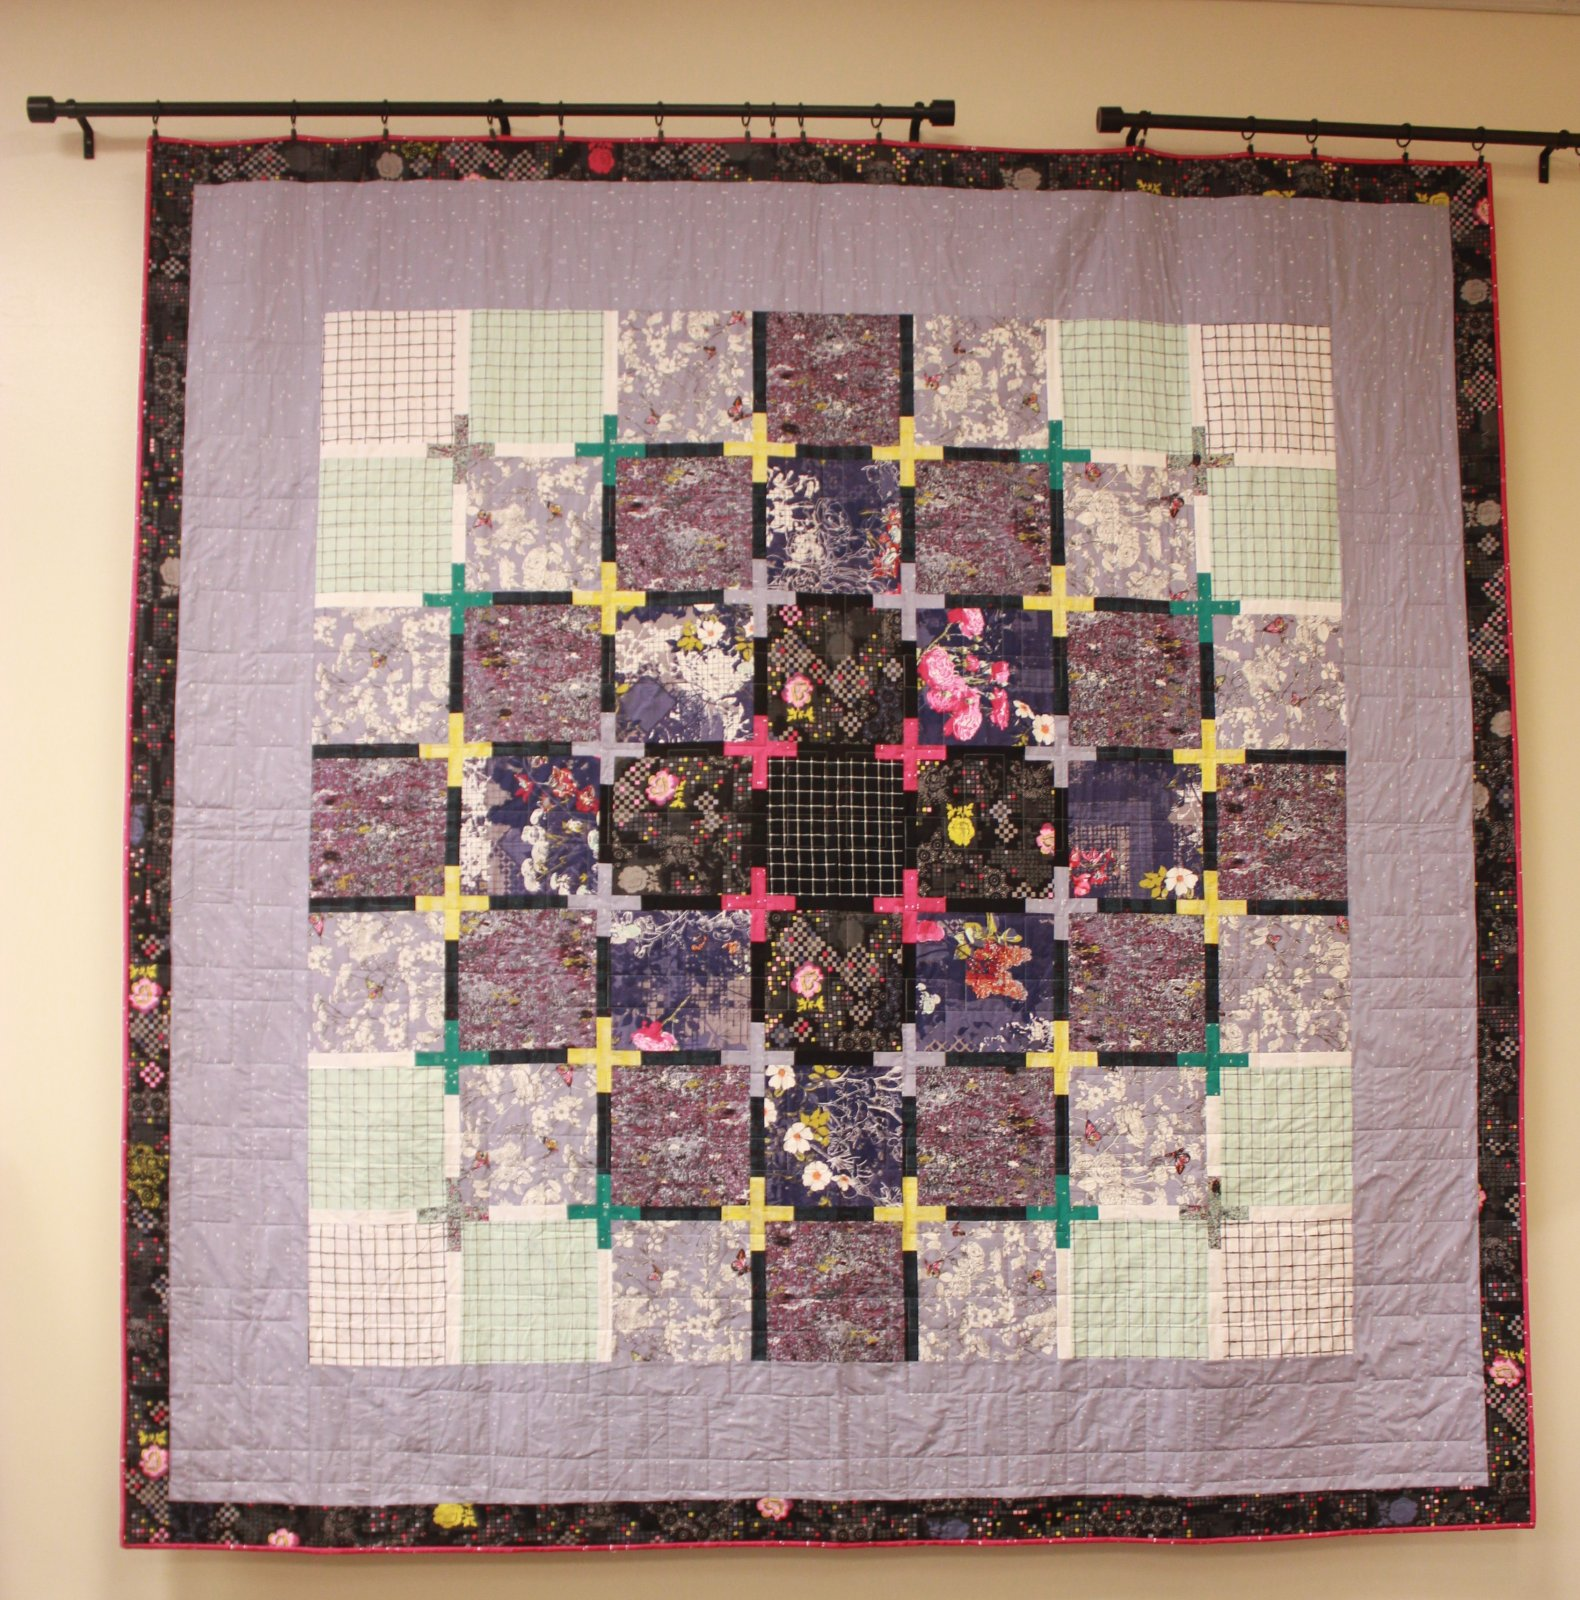 Megapixel Quilt Kit with Borders